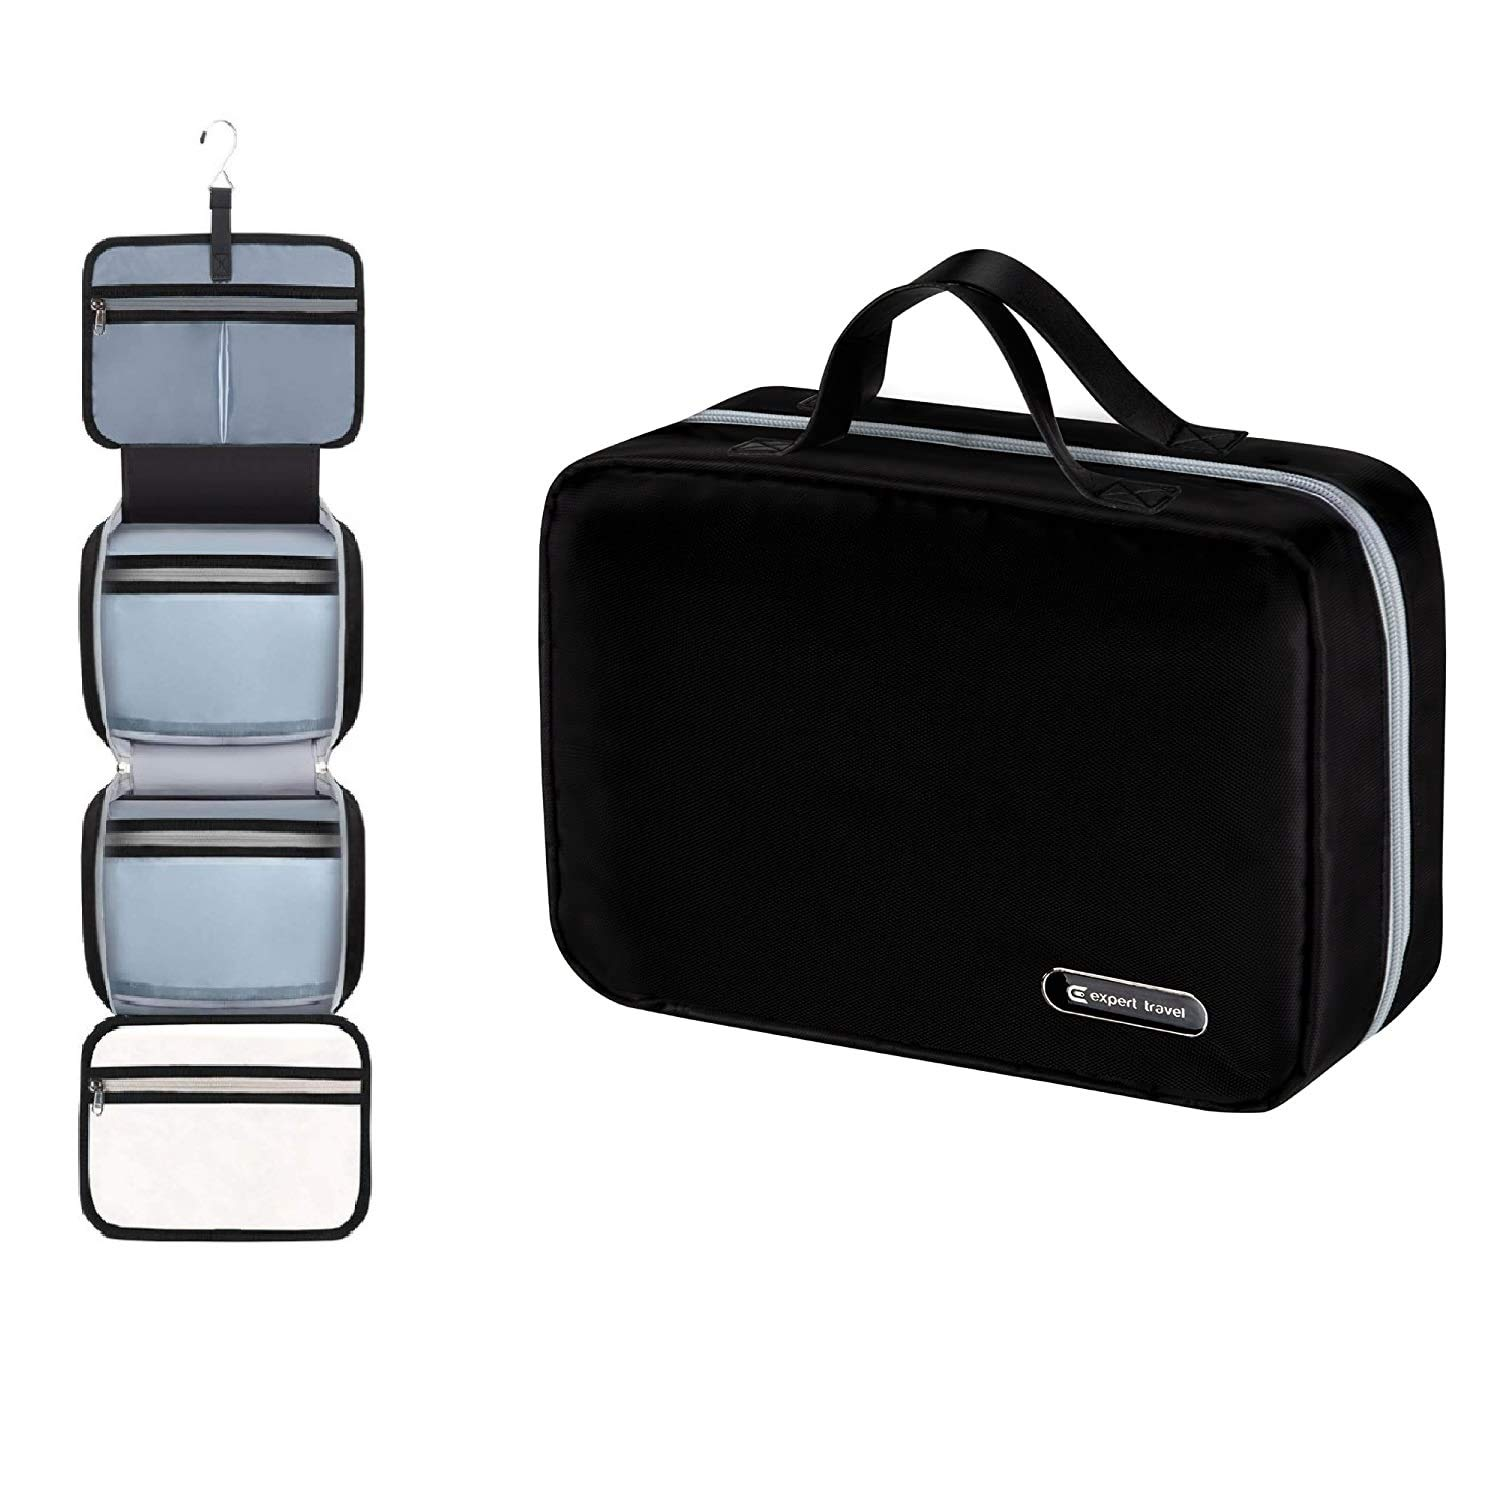 Hanging Travel Toiletry Bag For Men And Women Makeup Bag Cosmetic Bag Bathroom And Shower Organizer Kit Leak Proof 2 Sizes Large 34 X11 Xl Family Size 42 X13 Beauty Amazon Com